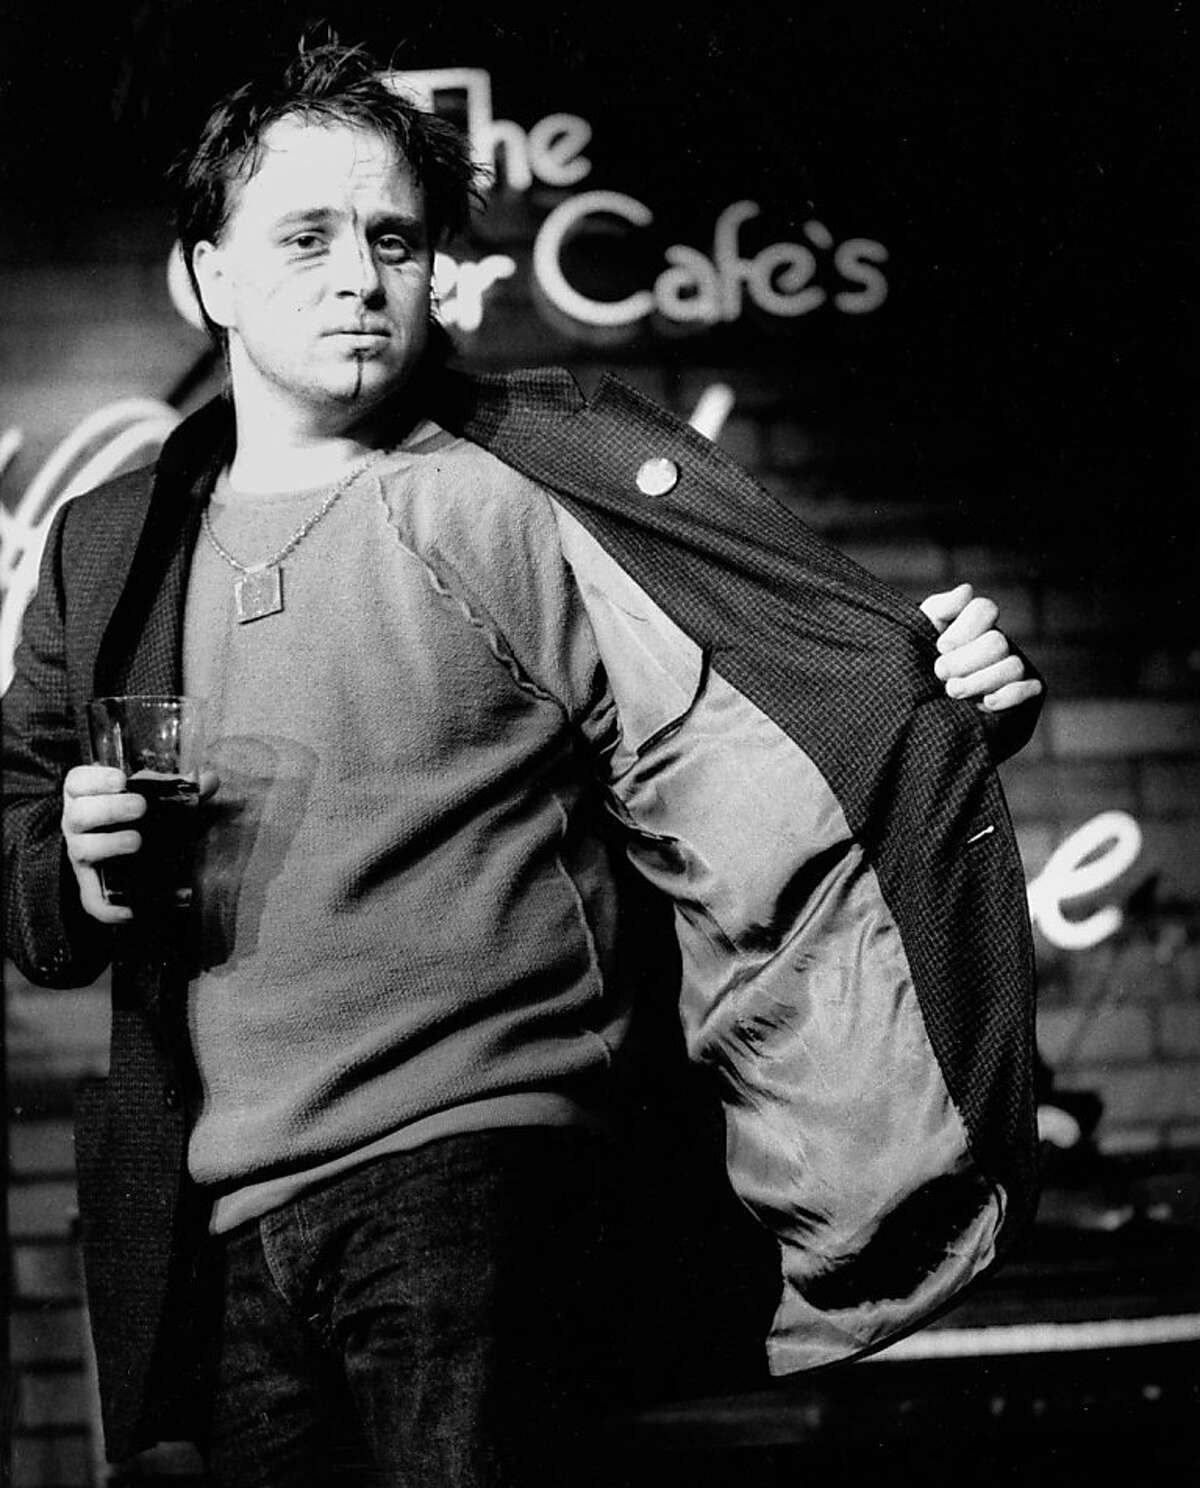 Bob Goldthwait on stage at the Other Cafe. Feb. 8, 1984.